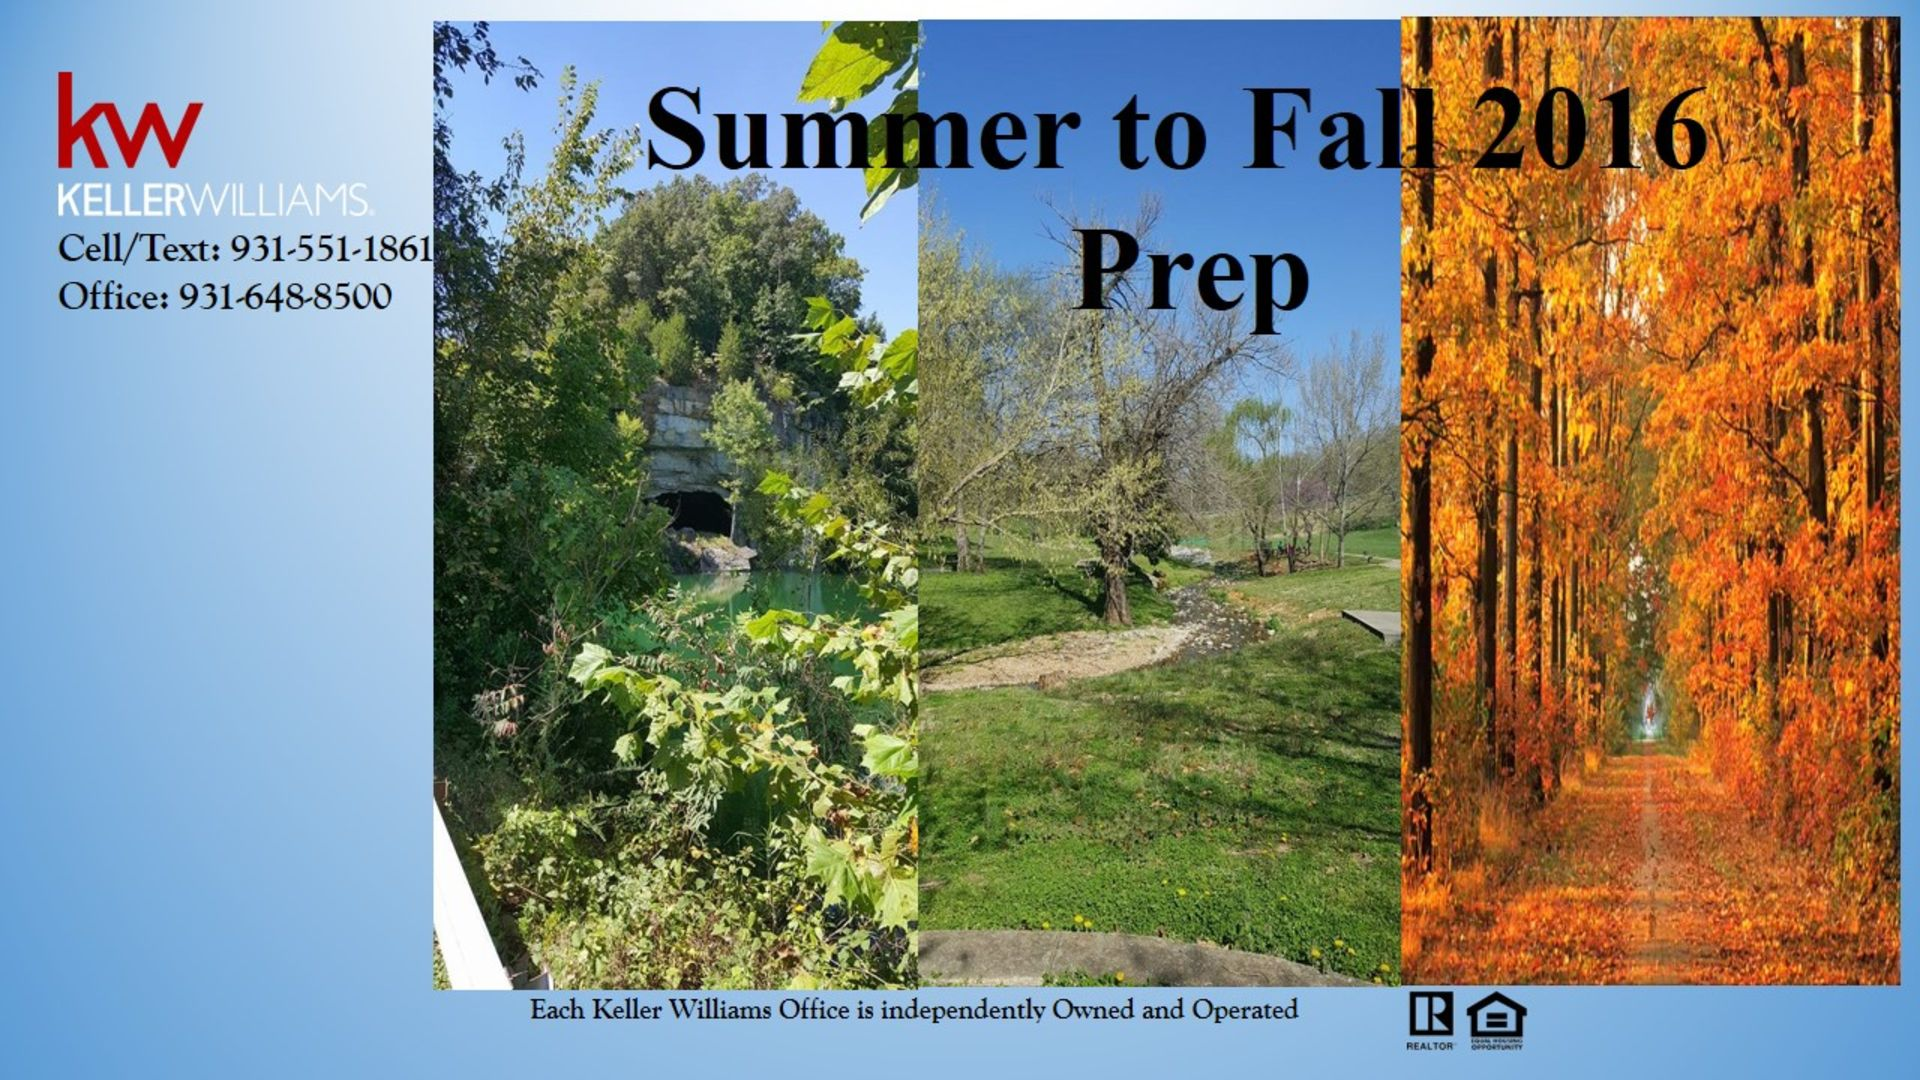 Summer to Fall 2016 Prep